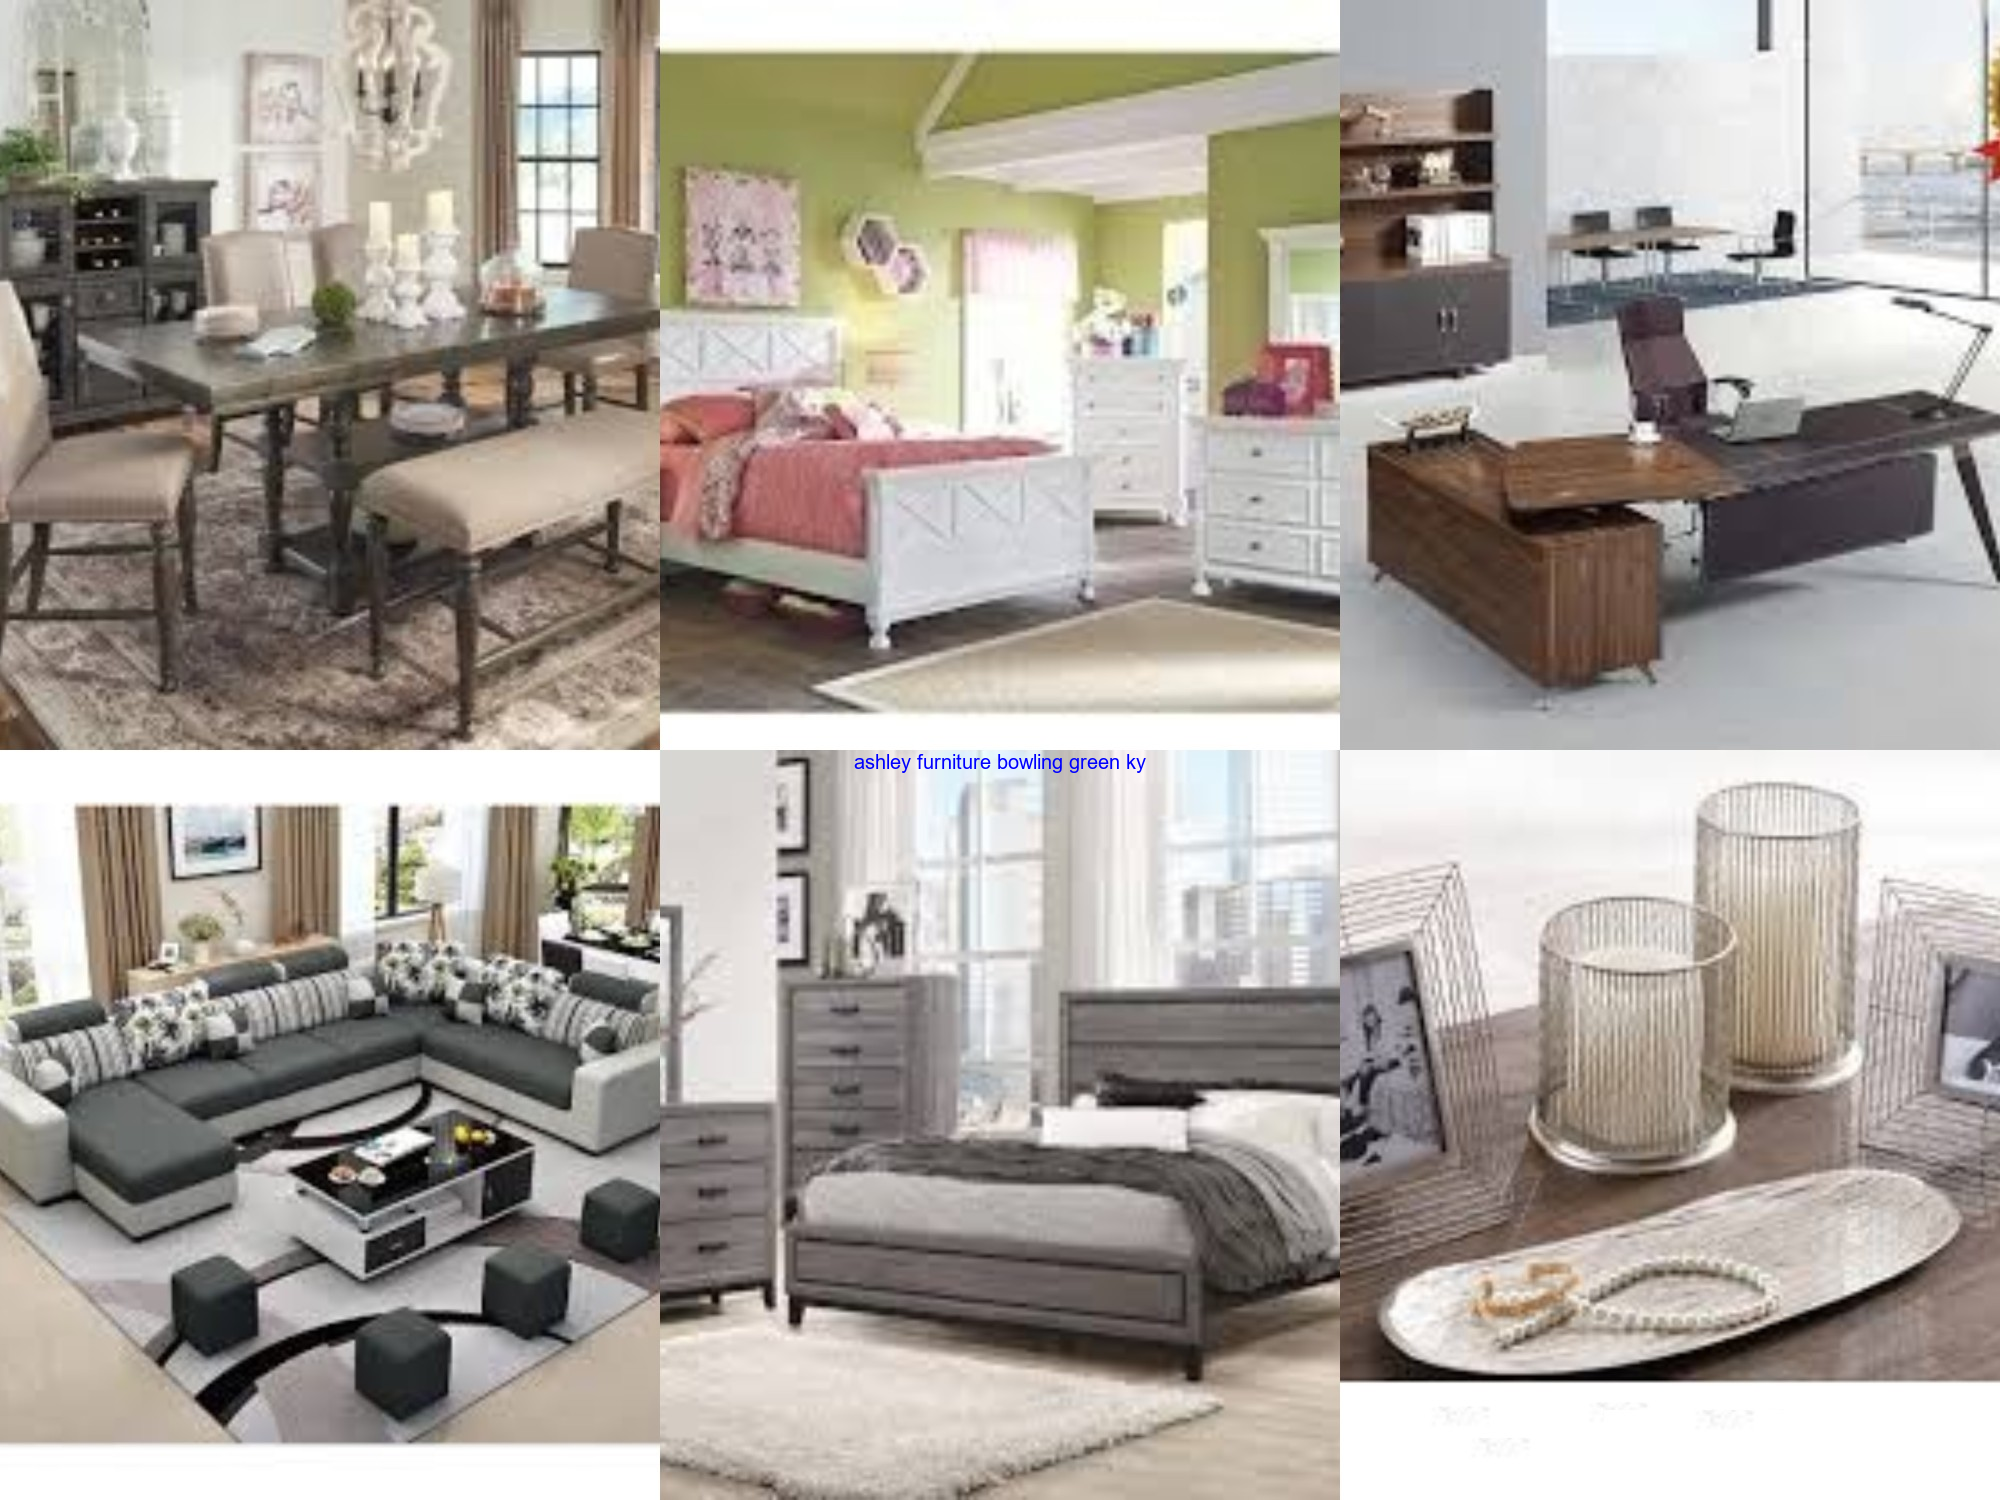 Ashley Furniture Bowling Green Ky I Might Suggest That You Try This Internet Site Where You Can Find D In 2020 Value City Furniture Parker House Wholesale Furniture